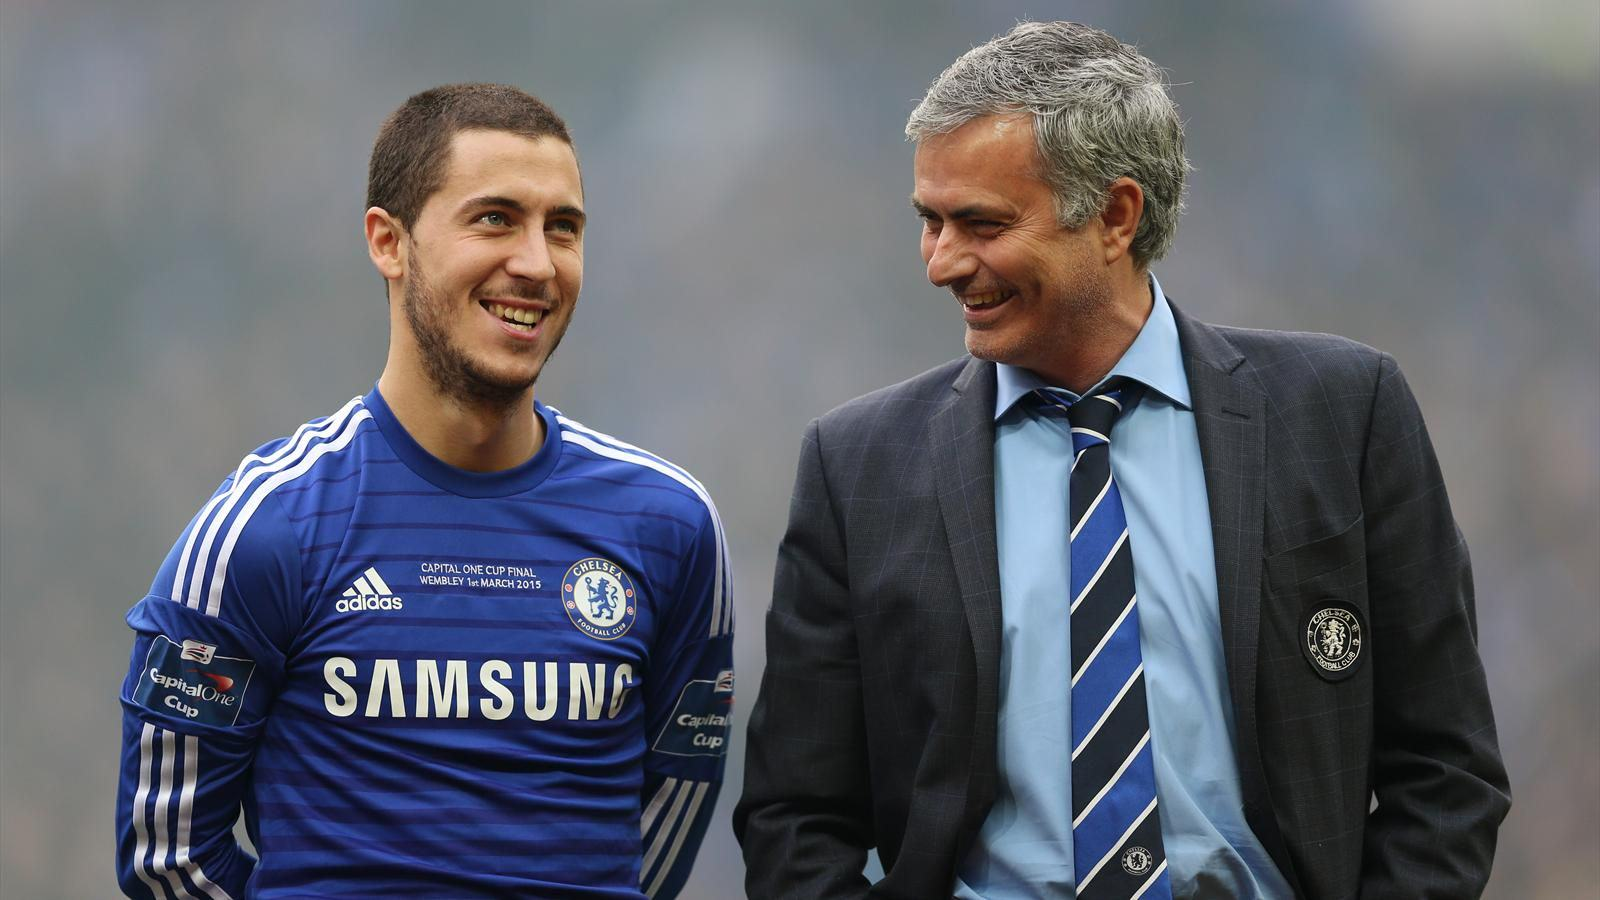 Jose Mourinho Is Chelseas Special One, And The Fans Know It UNILAD hazard jose34196